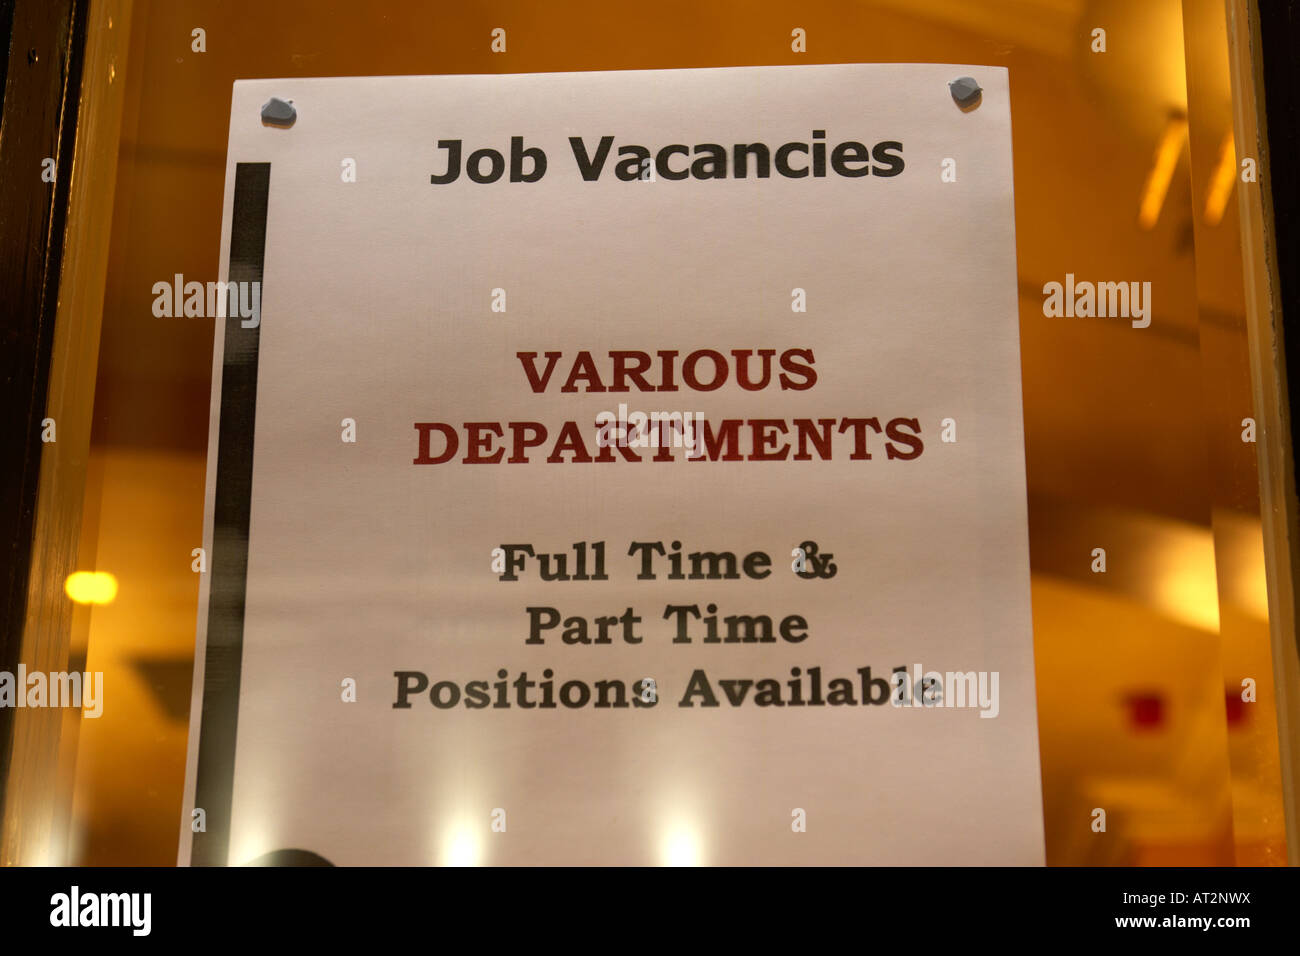 Job Vacancy Stock Photos & Job Vacancy Stock Images - Alamy